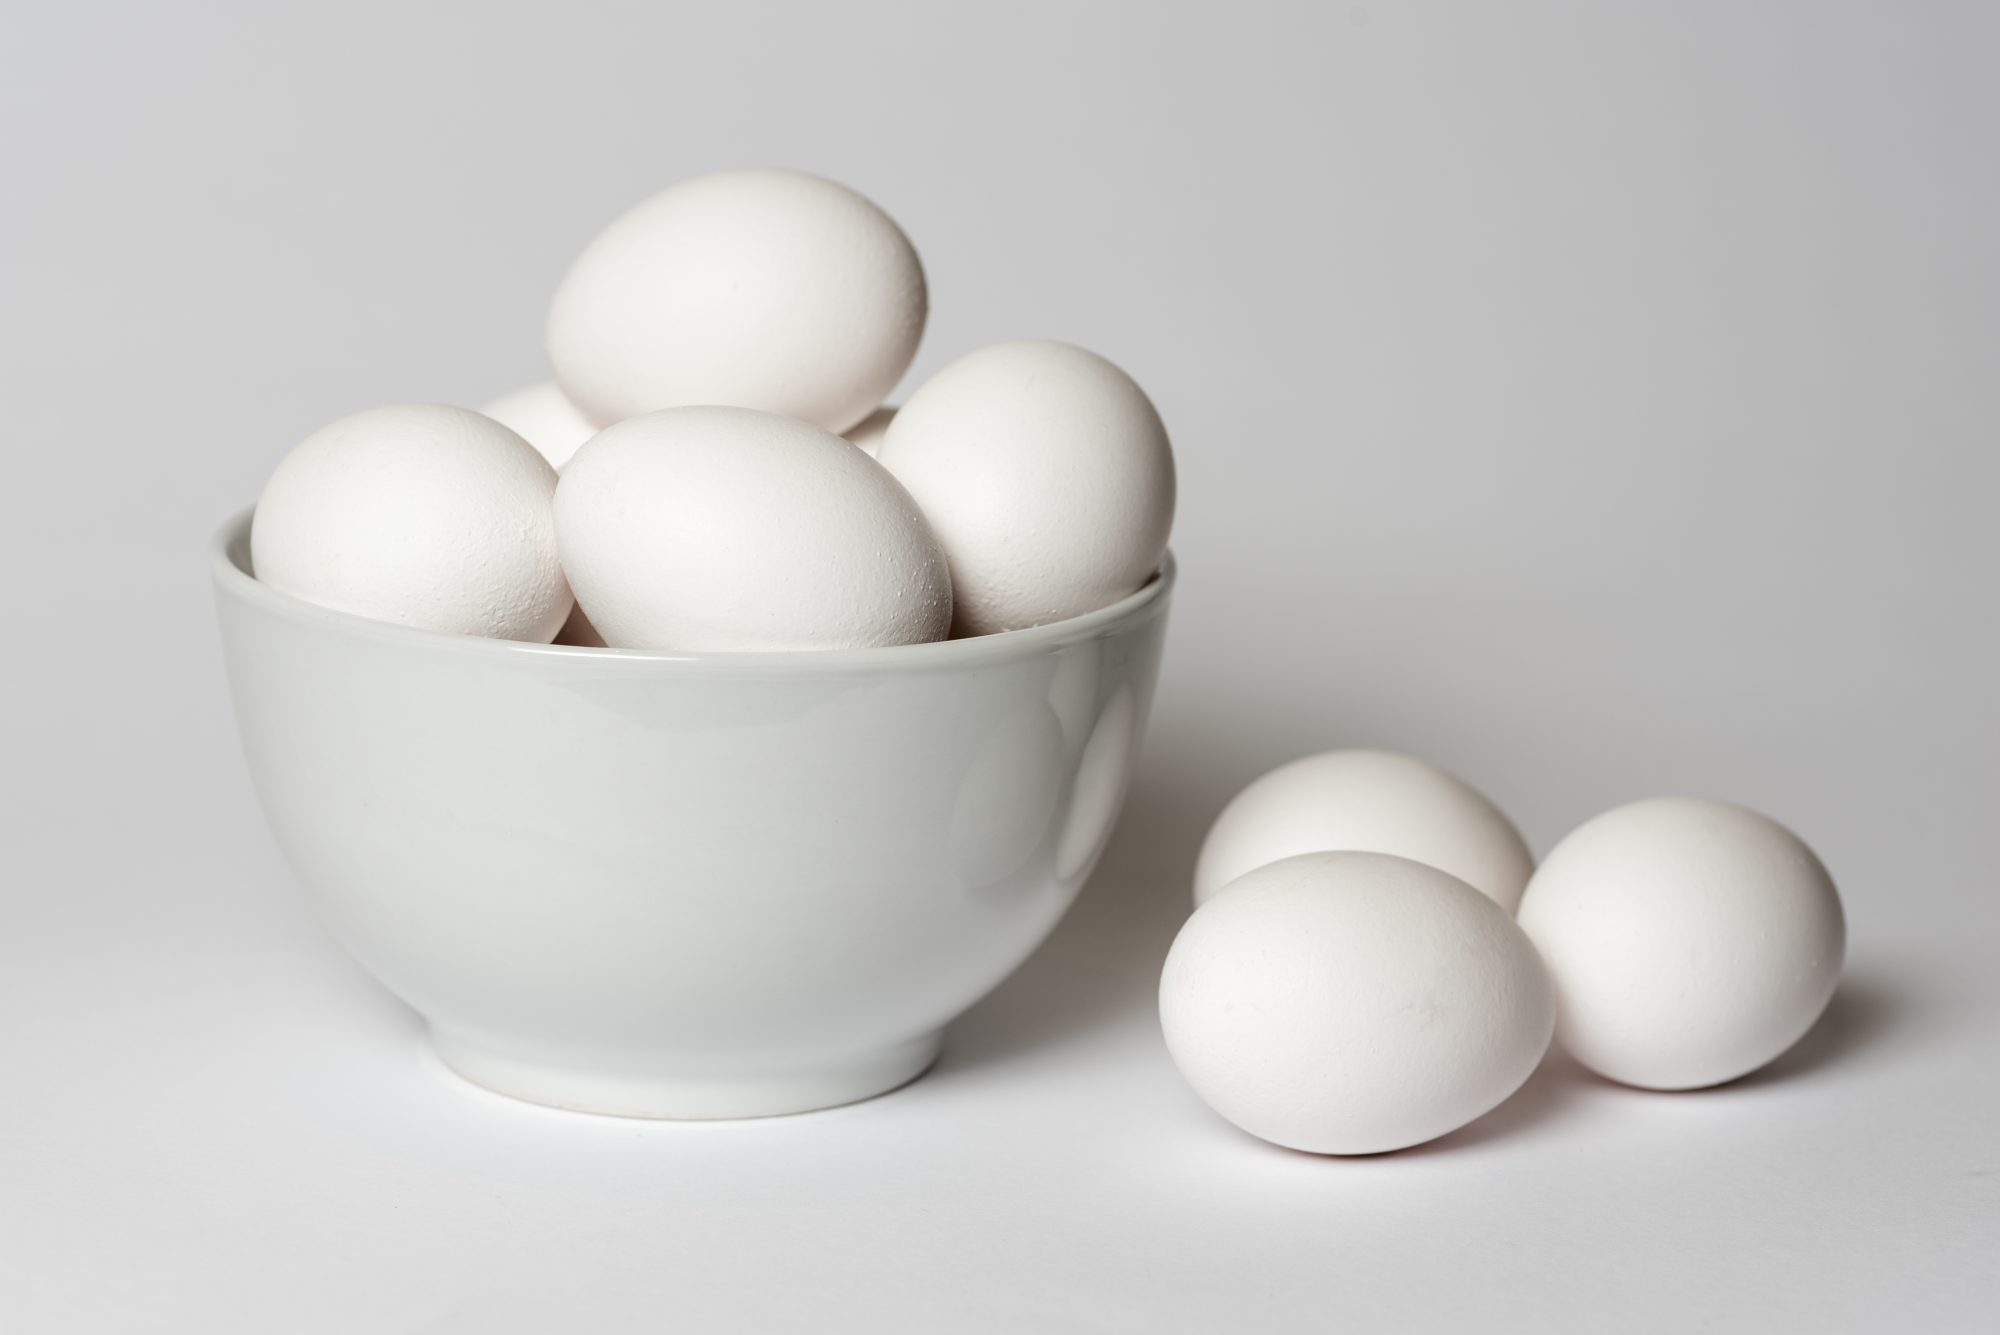 White eggs in a china bowl with three more eggs lying alongside all on a white background